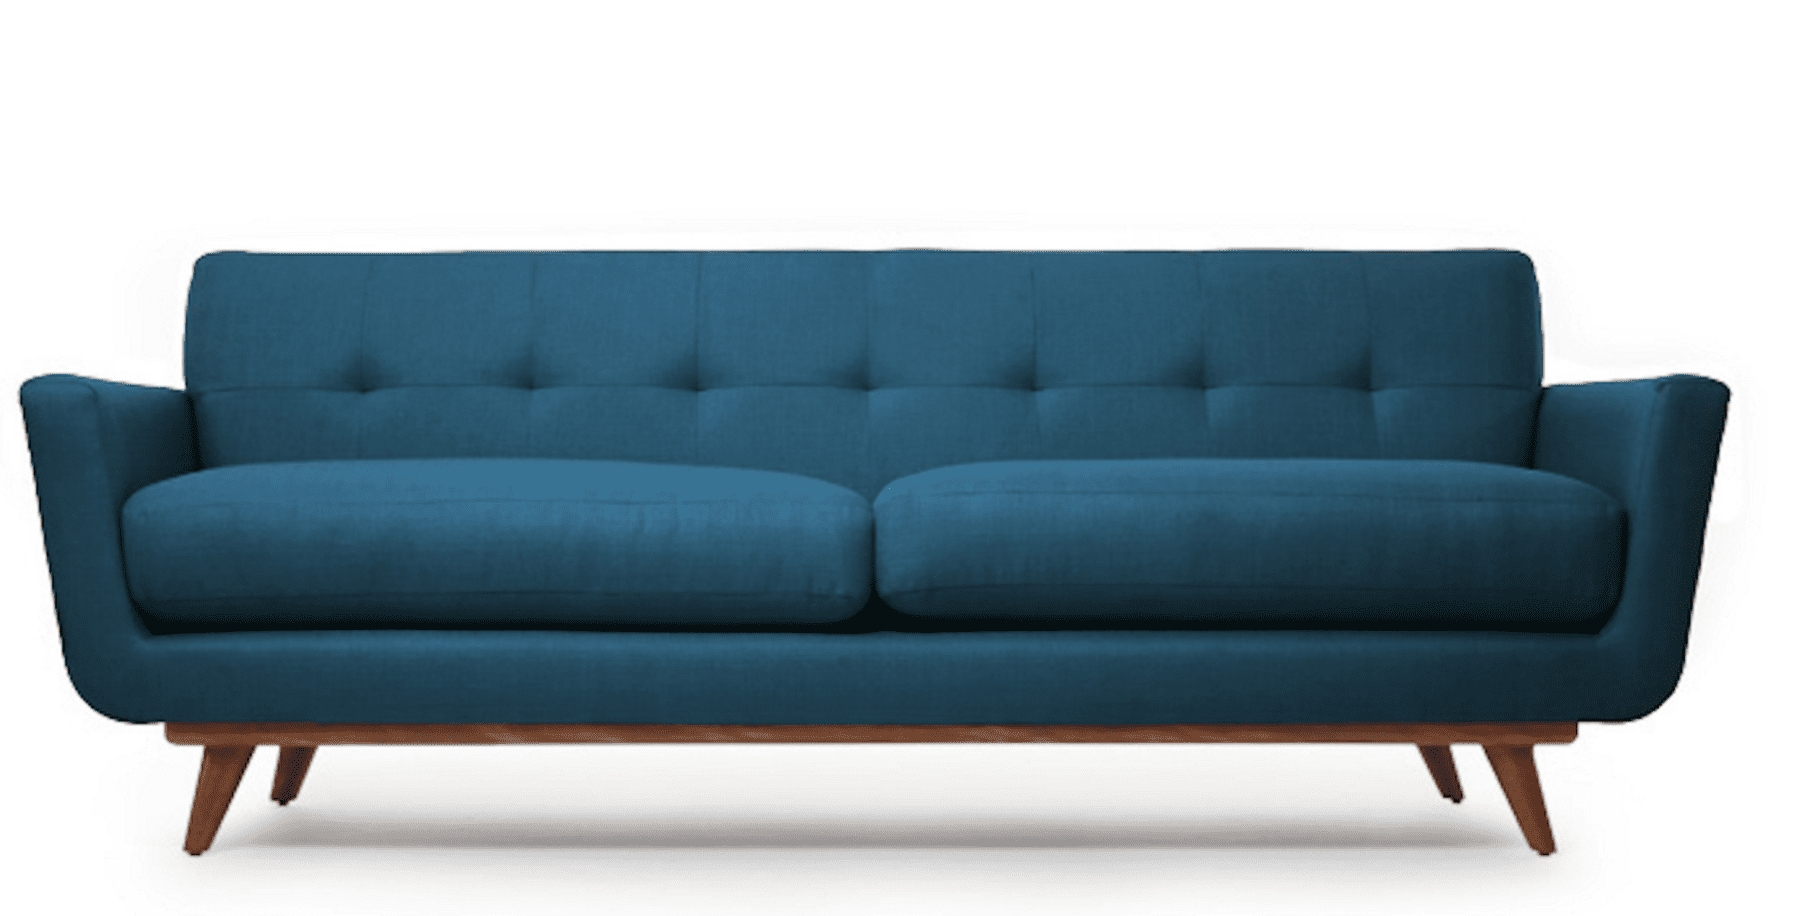 Scandinavian Furniture Sale 20 Collection Of Modern Sofas Houston Sofa Ideas